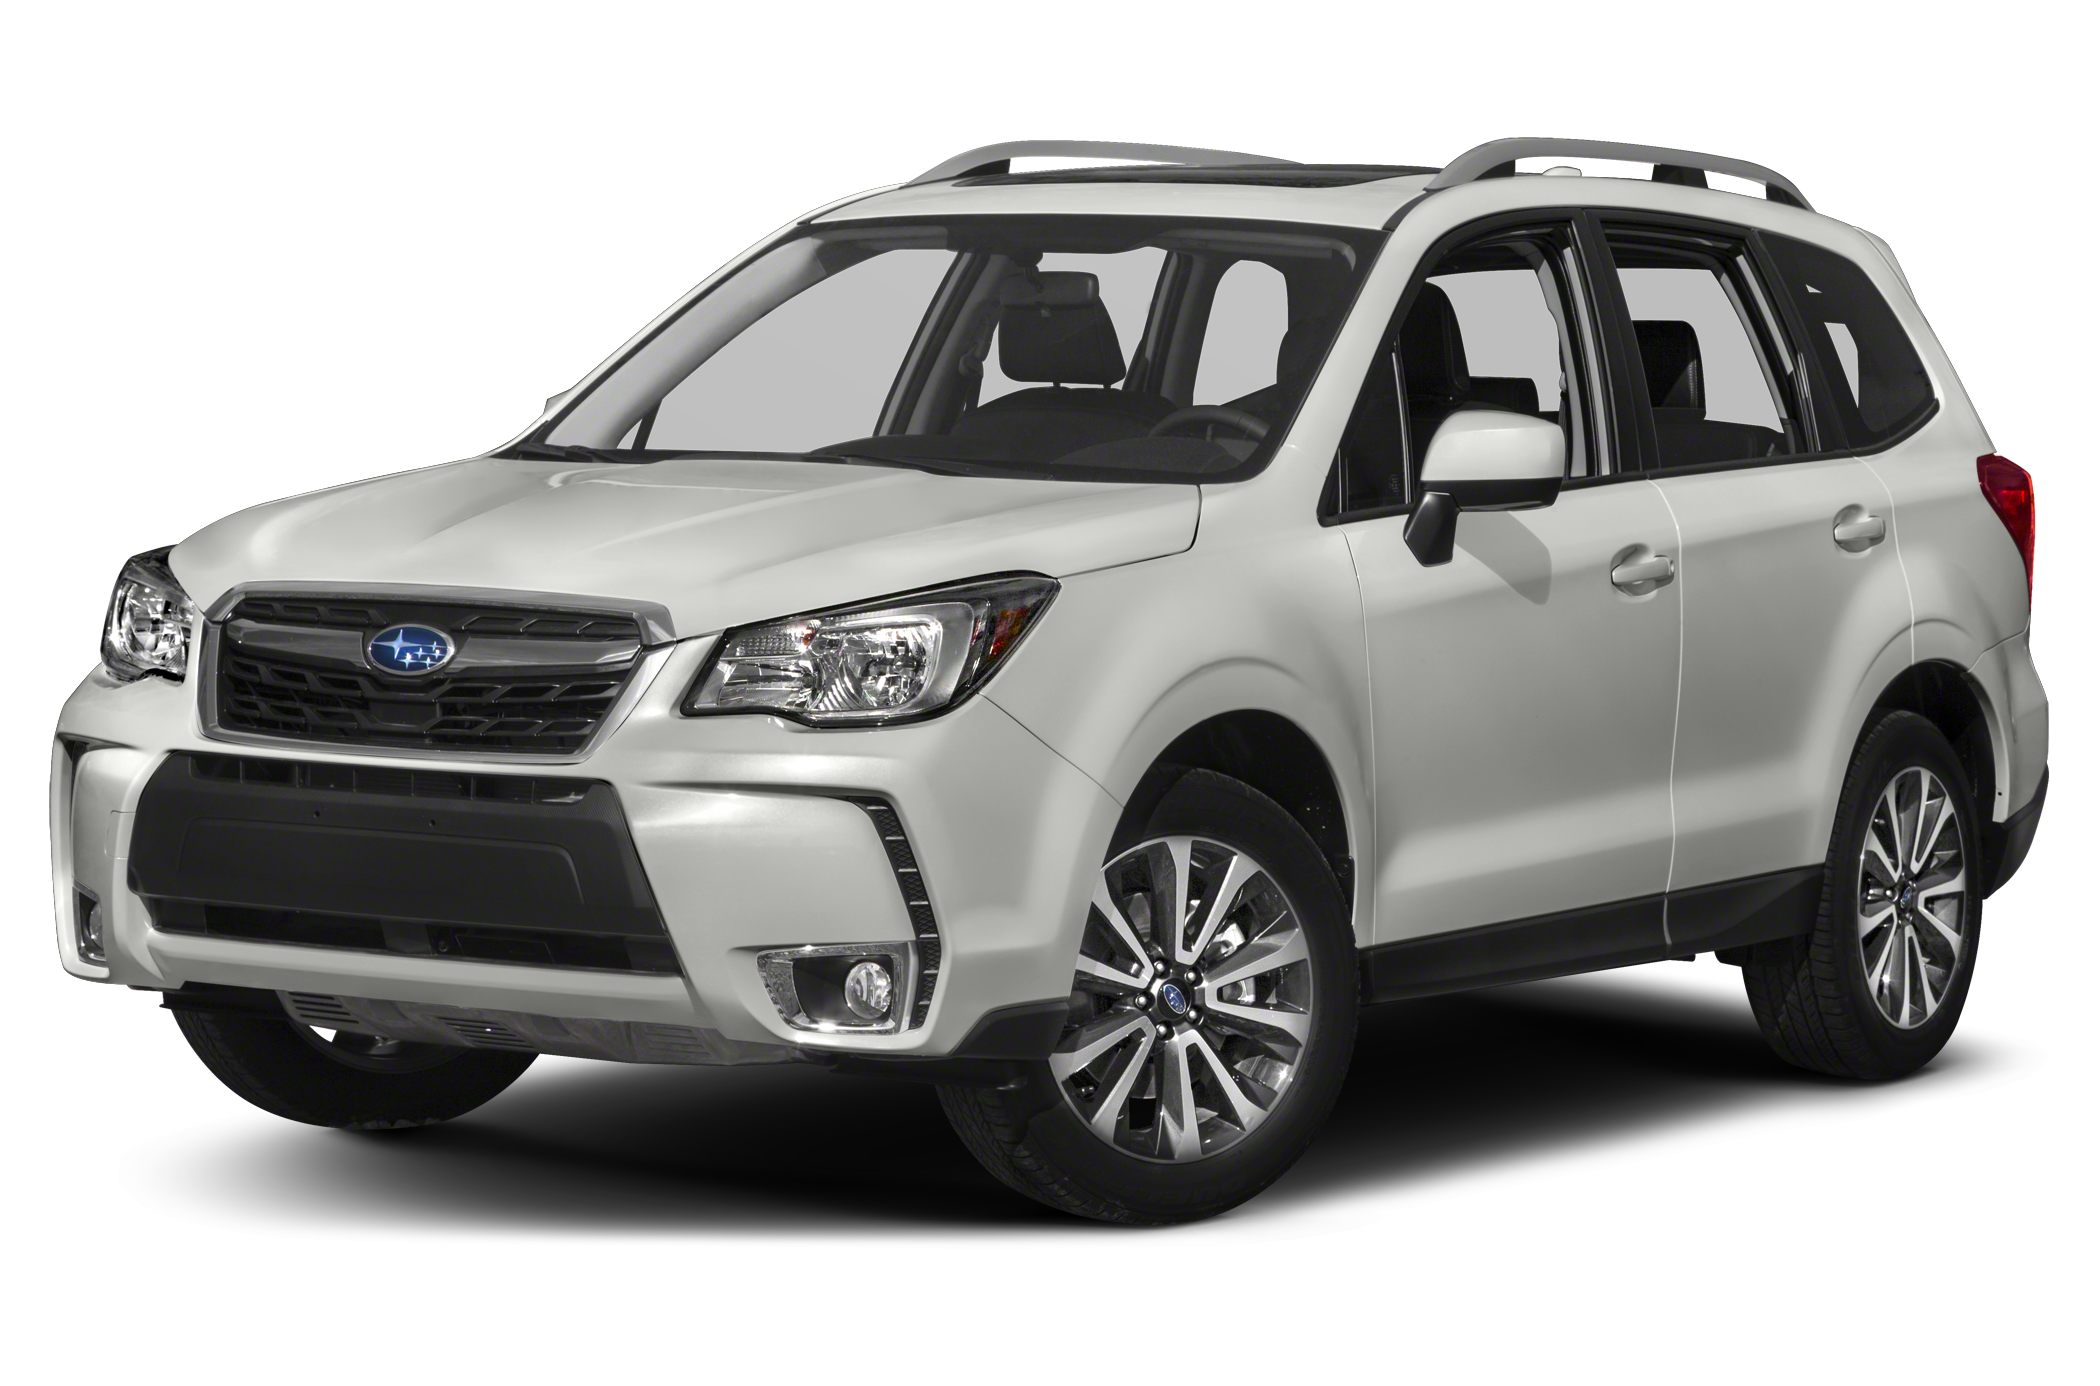 2017 Subaru Forester Xt Touring Owners Manual